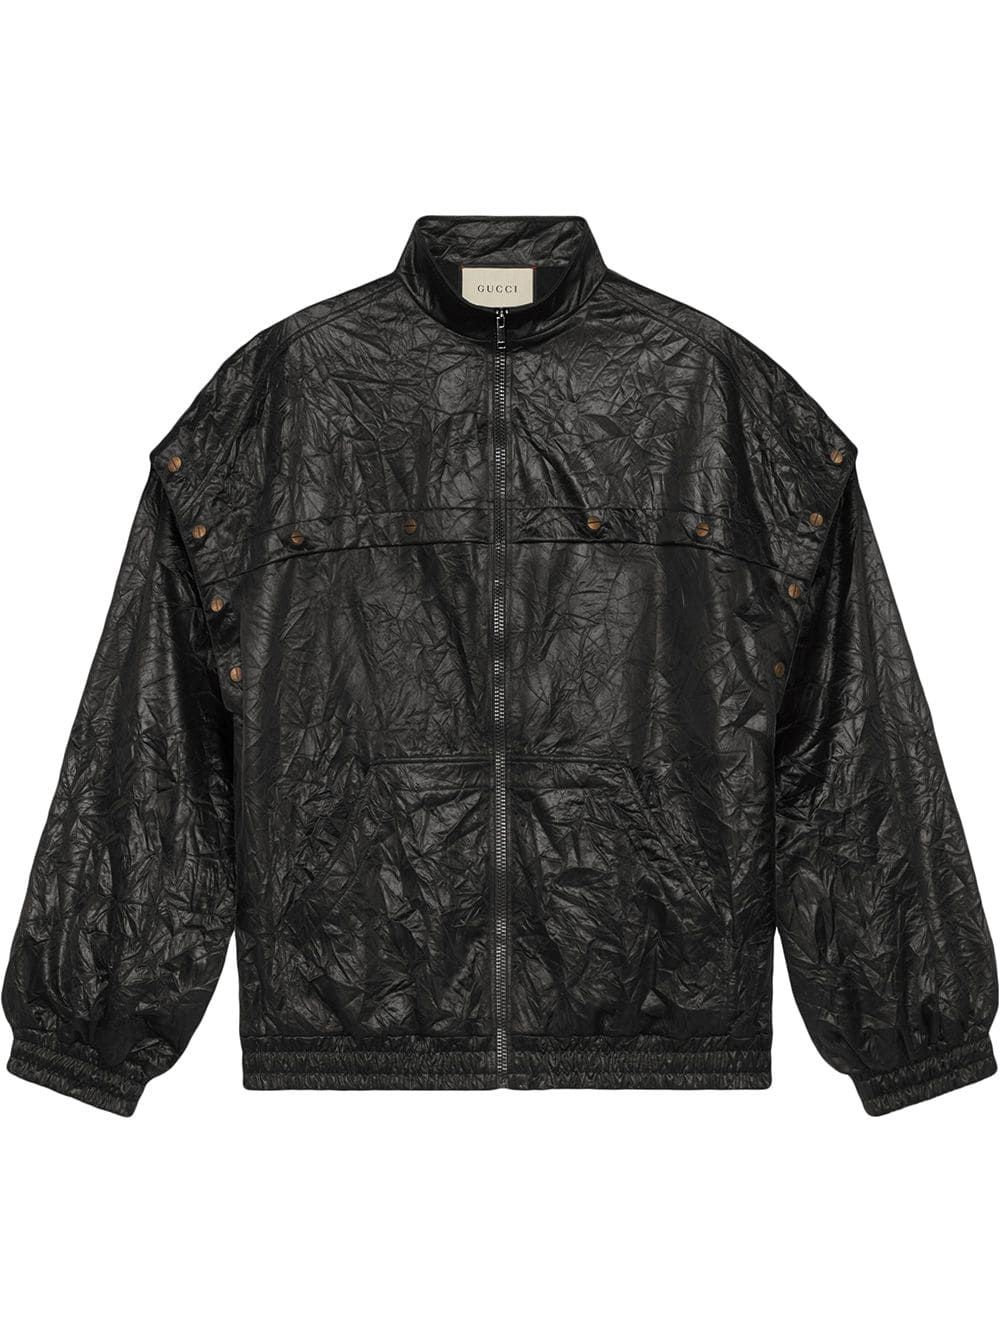 c68d9f384b Gucci crinkled-effect jacket - Black in 2019 | Products | Jackets ...